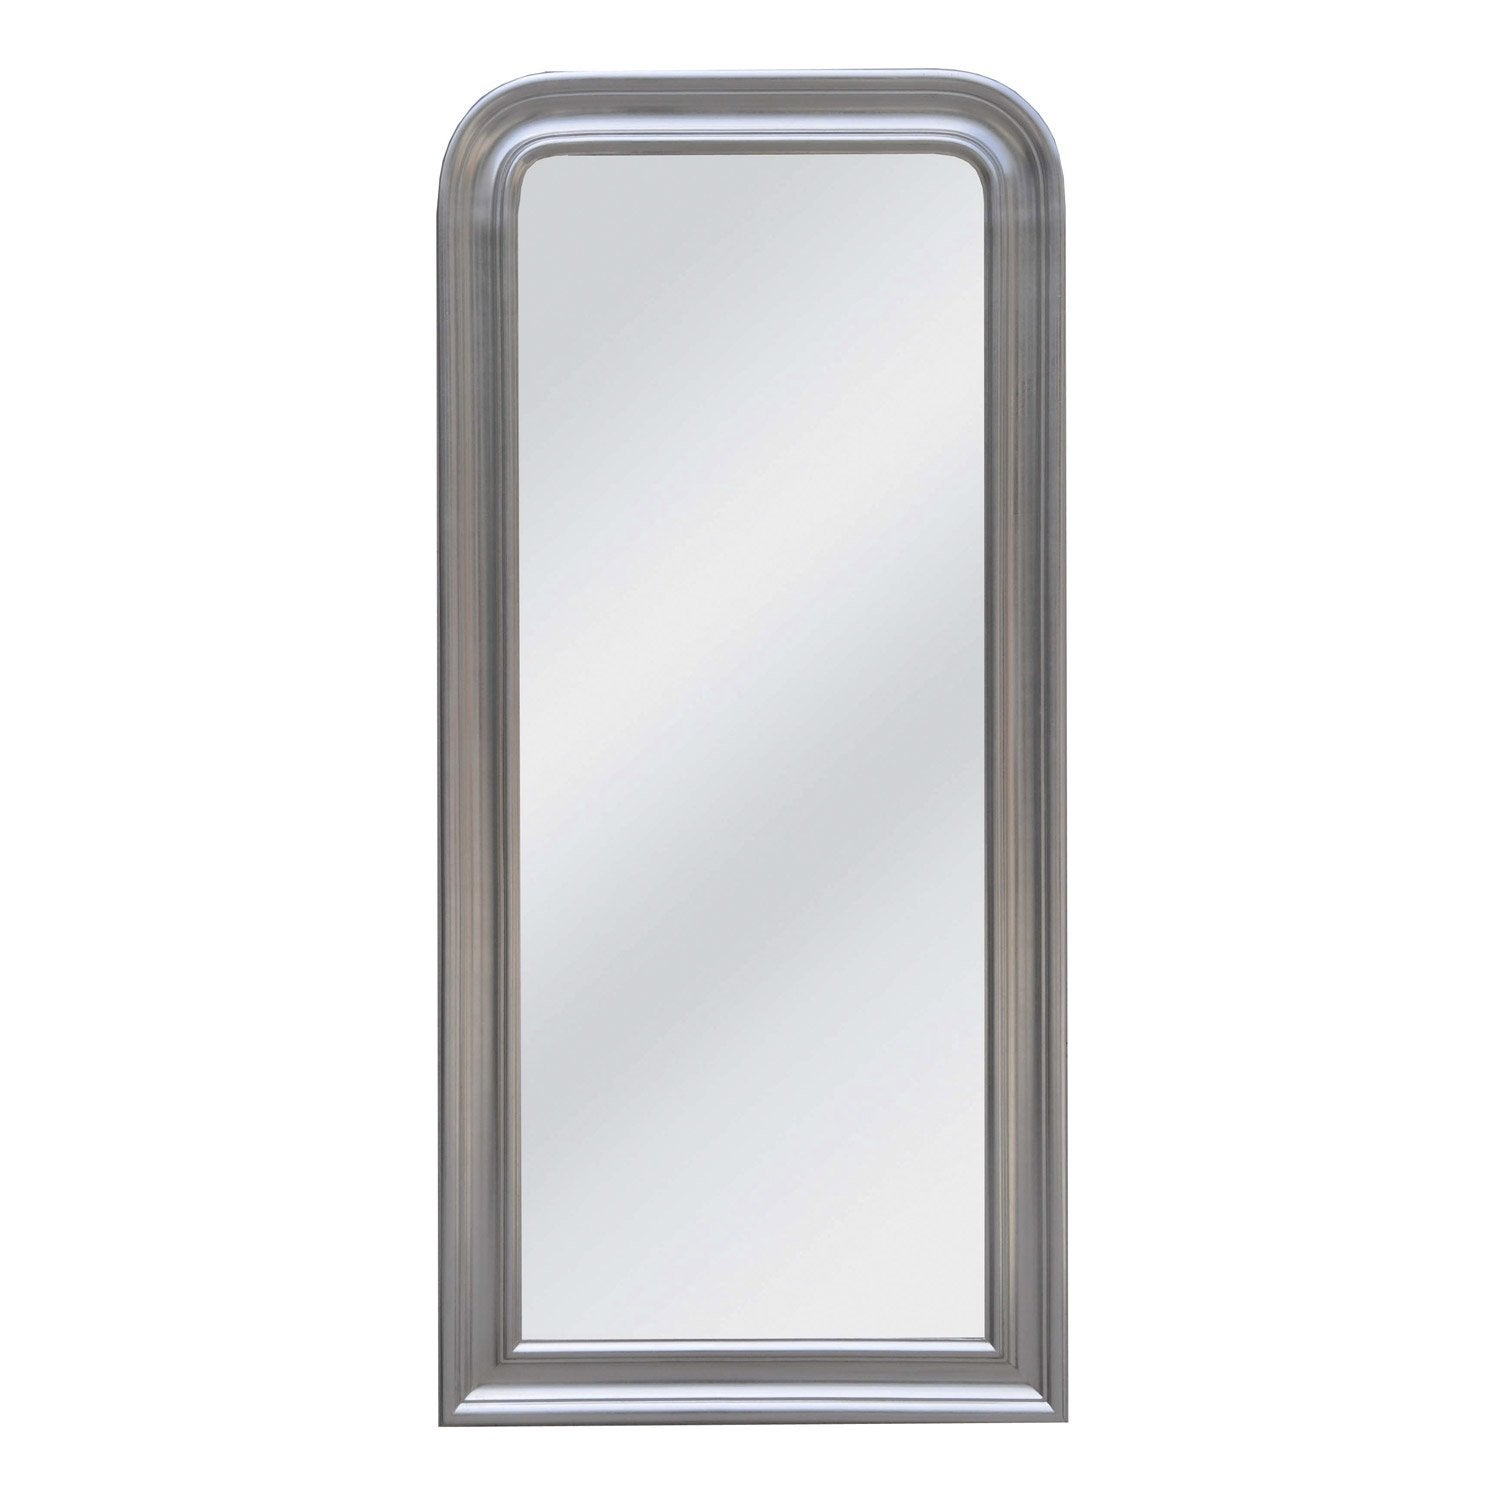 Miroir daventry rectangle argent 70x150 cm leroy merlin for Miroir 150 cm